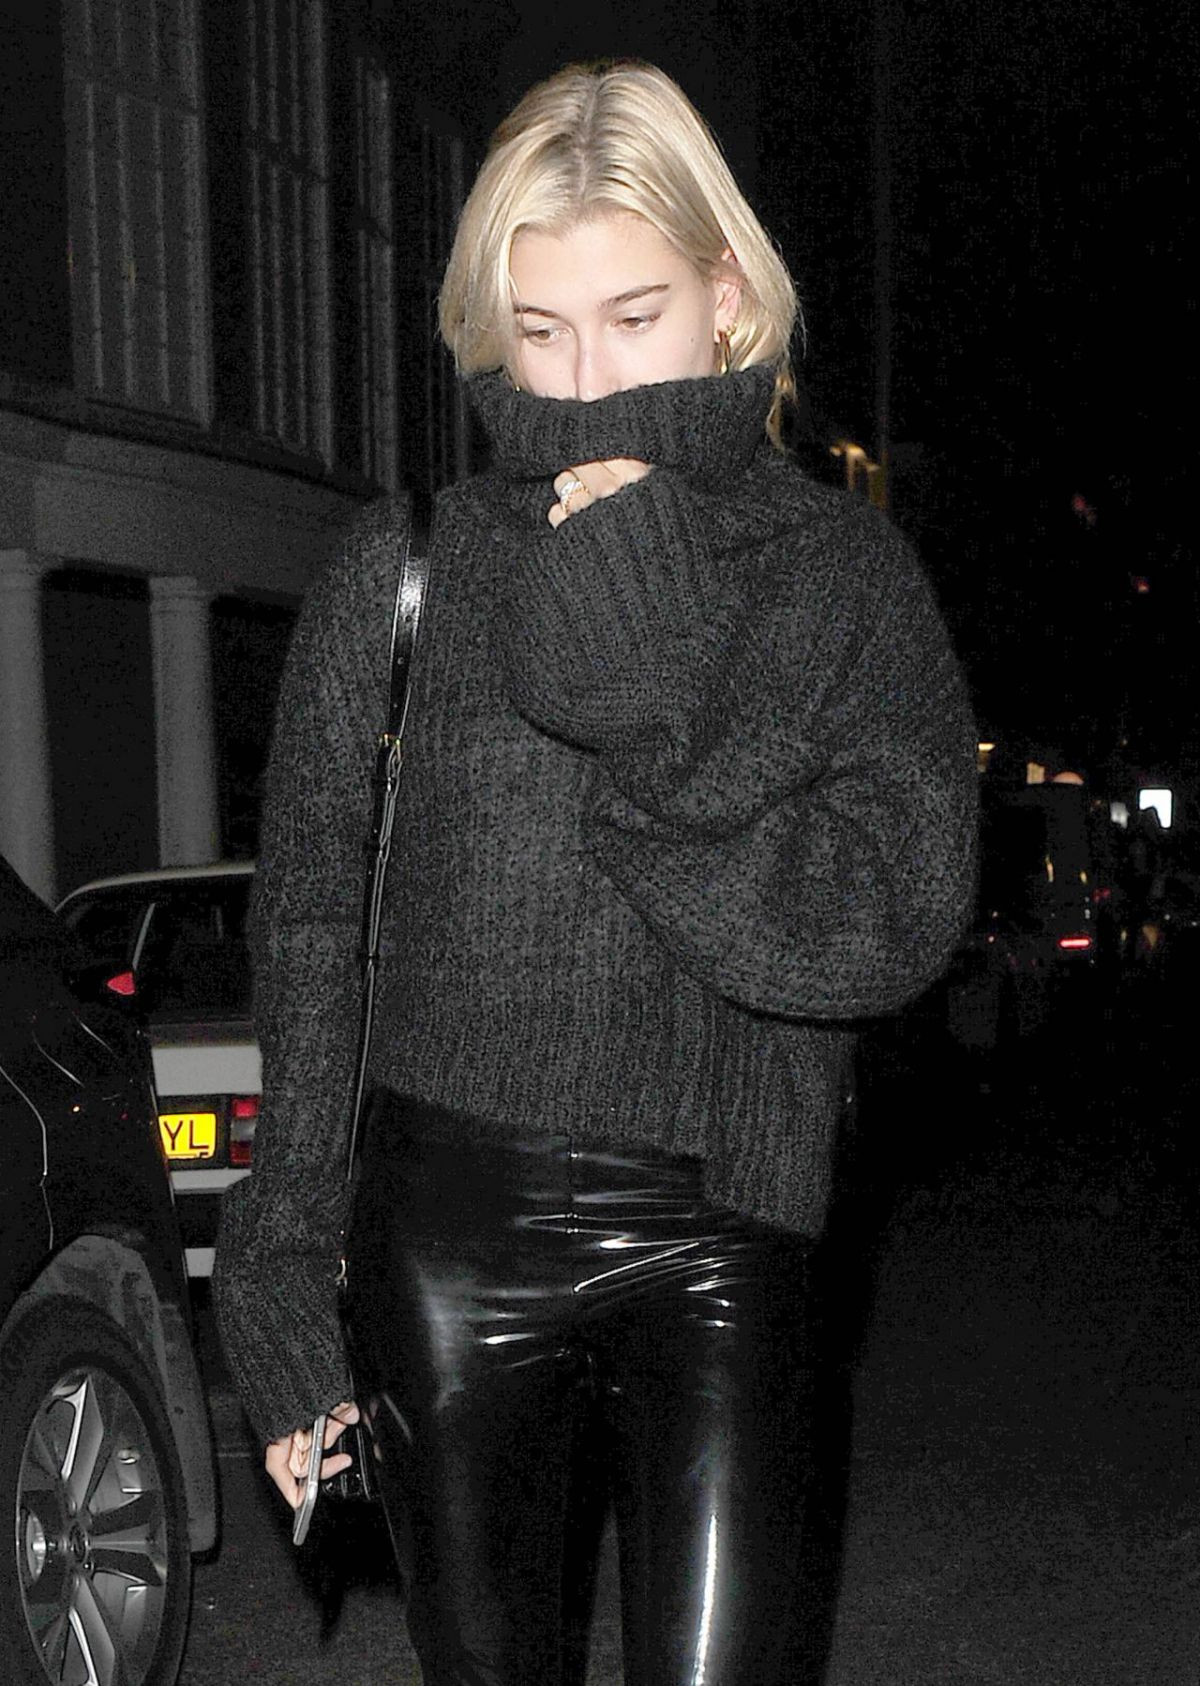 HAILEY BALDWIN at Nobu Berkeley in London 09/13/2017